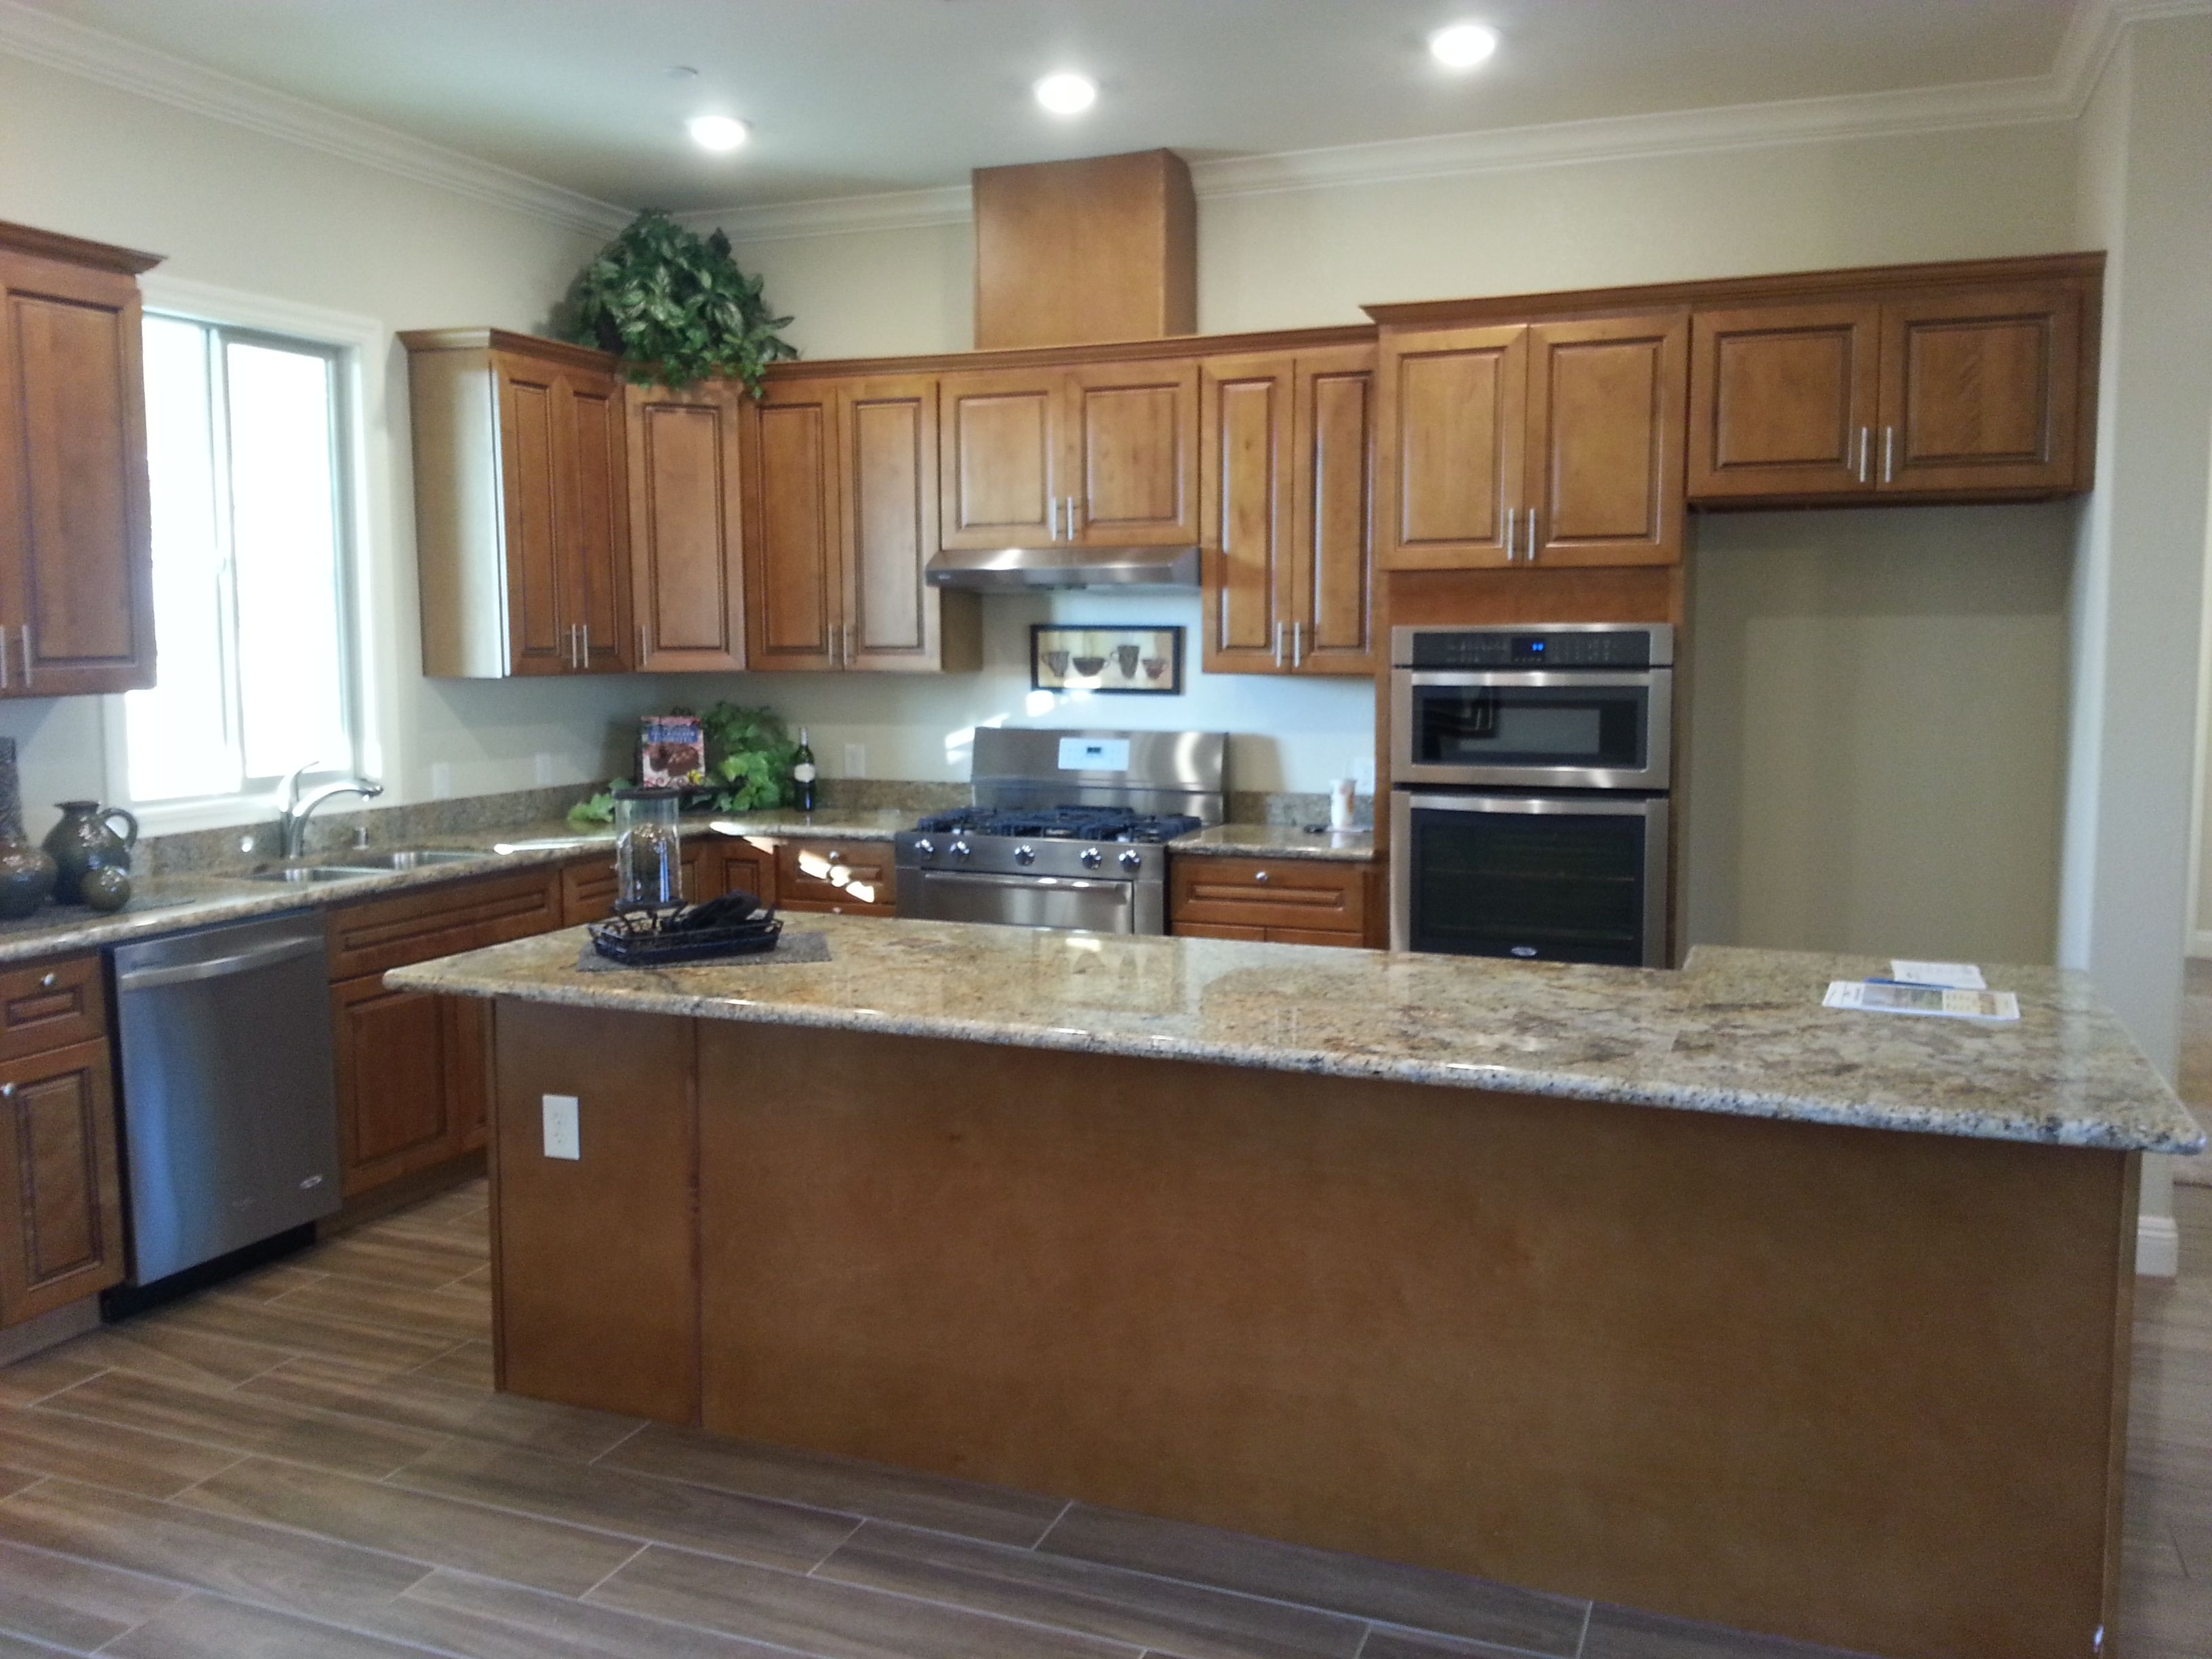 Model Home Warm Kitchen Cabinets With Granite Countertops Warm Kitchen Kitchen Cabinets Model Homes